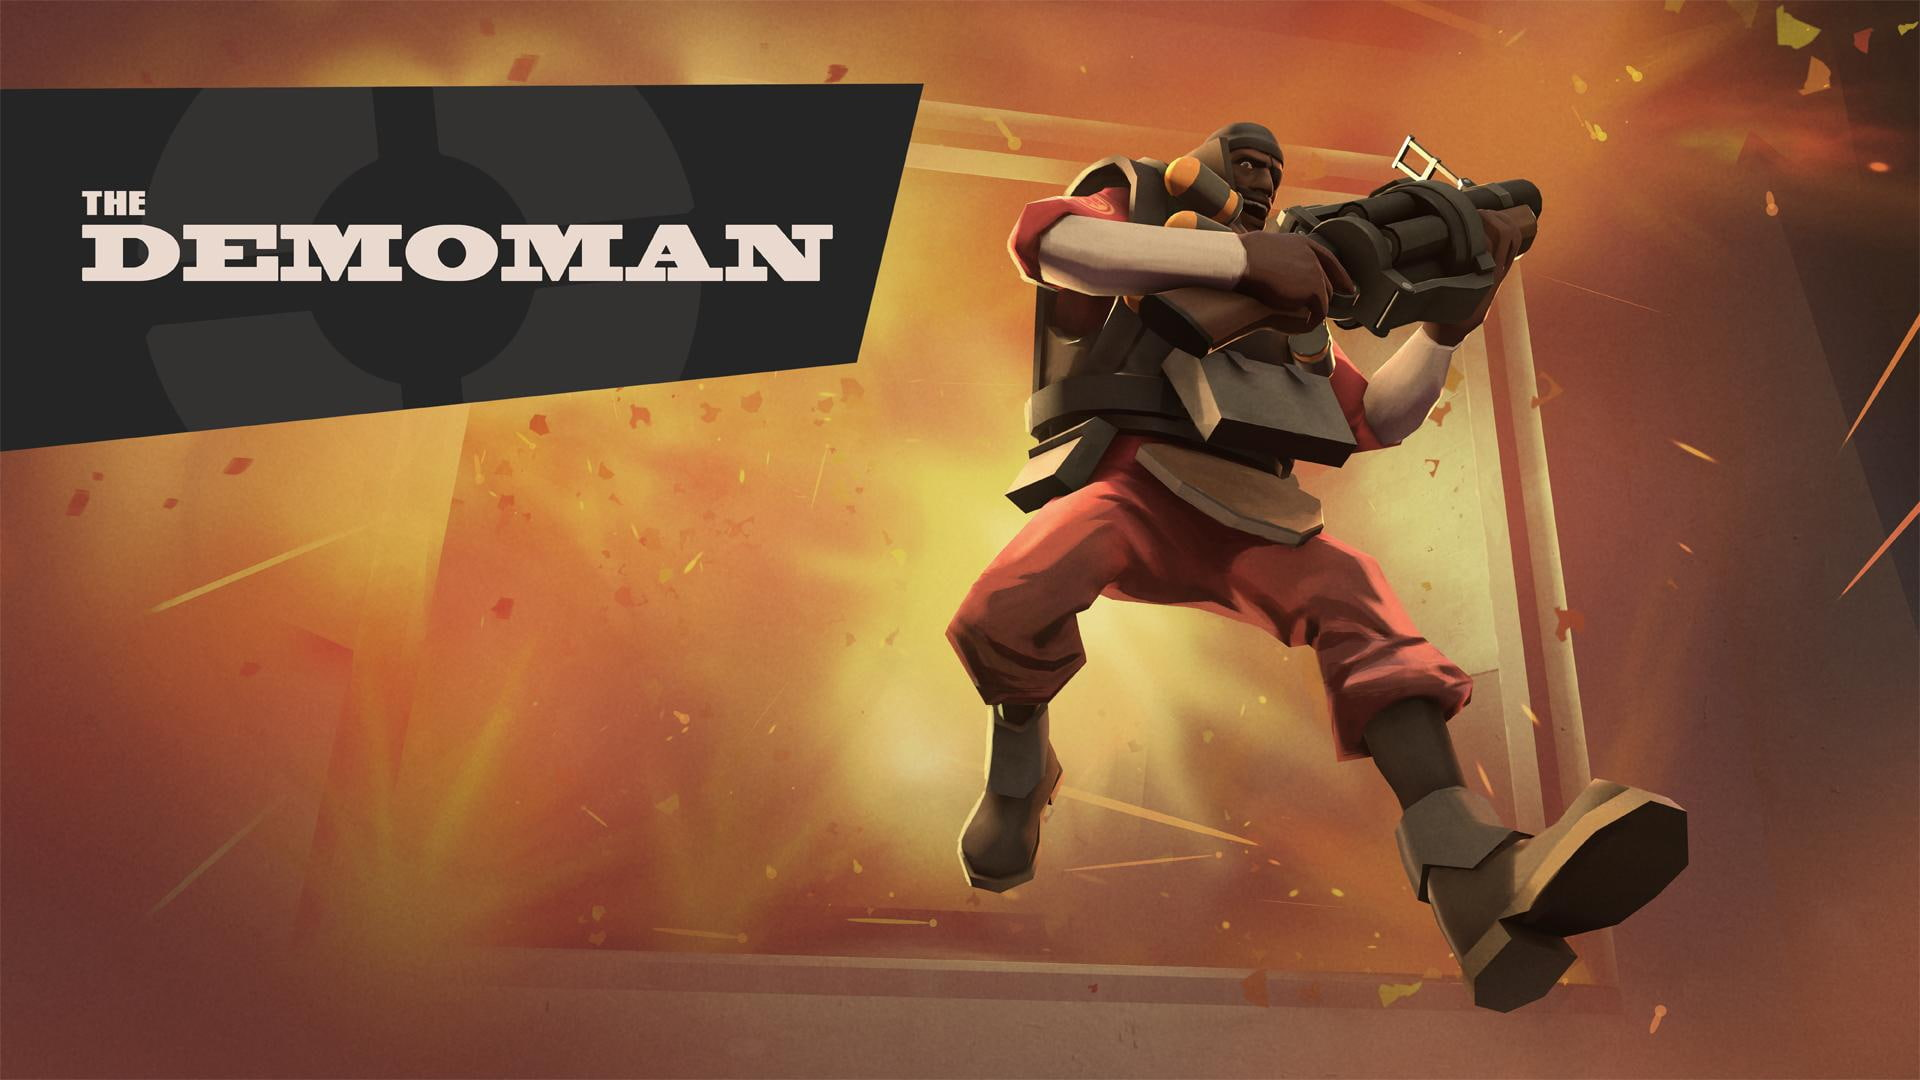 HD wallpaper Team Fortress 2 game application Demoman Team 1920x1080